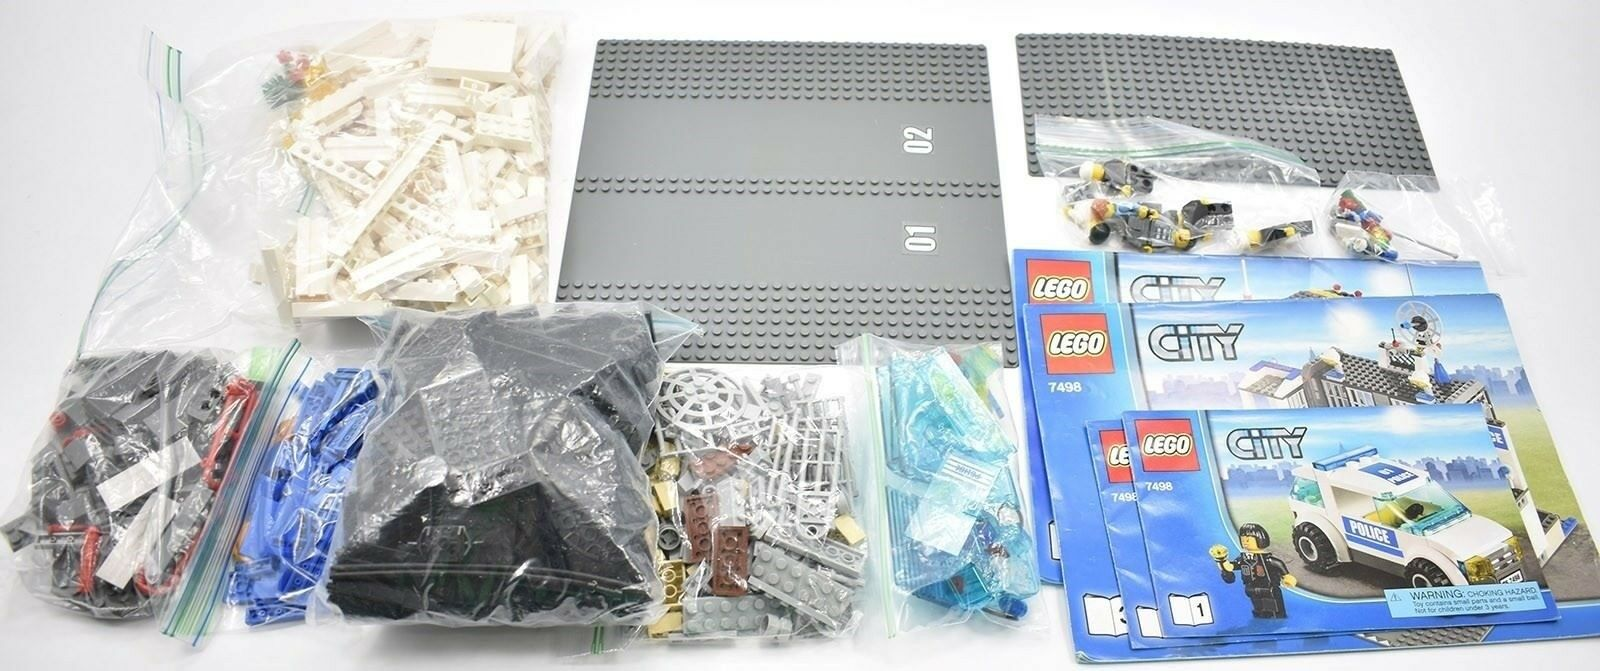 Lego City Police Station  7498 100% Complete With Instructions 2011